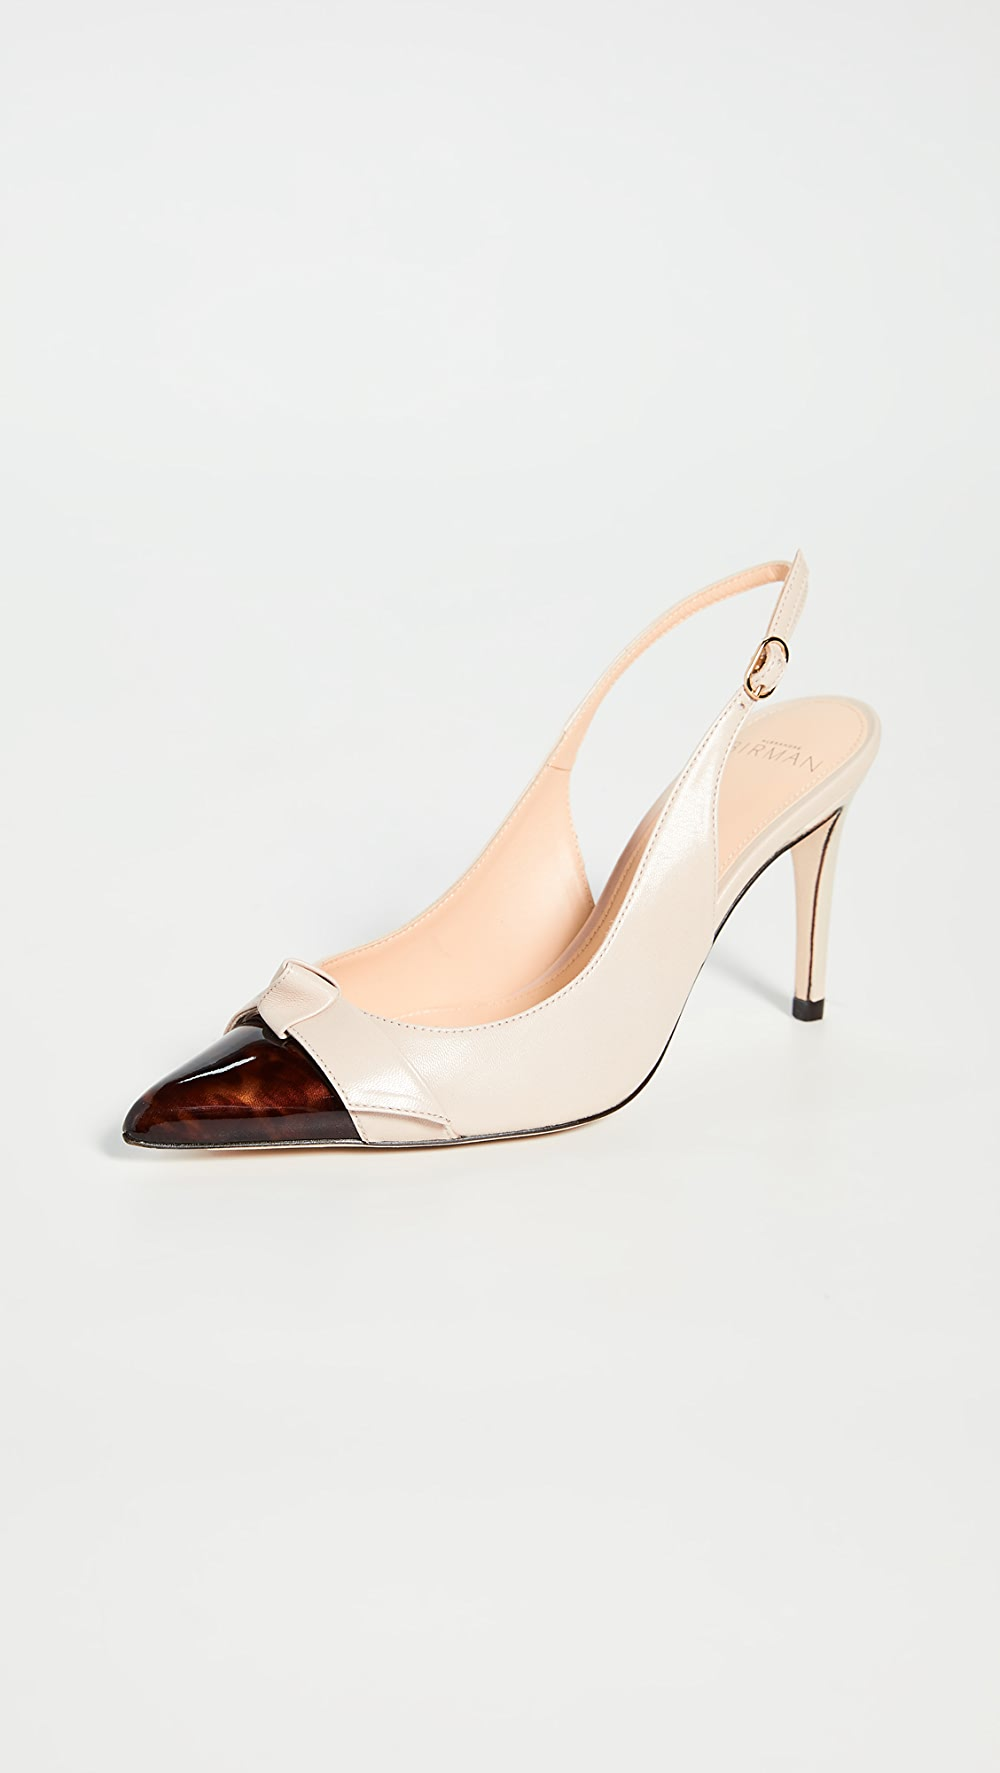 Competent Alexandre Birman - Paula Slingback Providing Amenities For The People; Making Life Easier For The Population